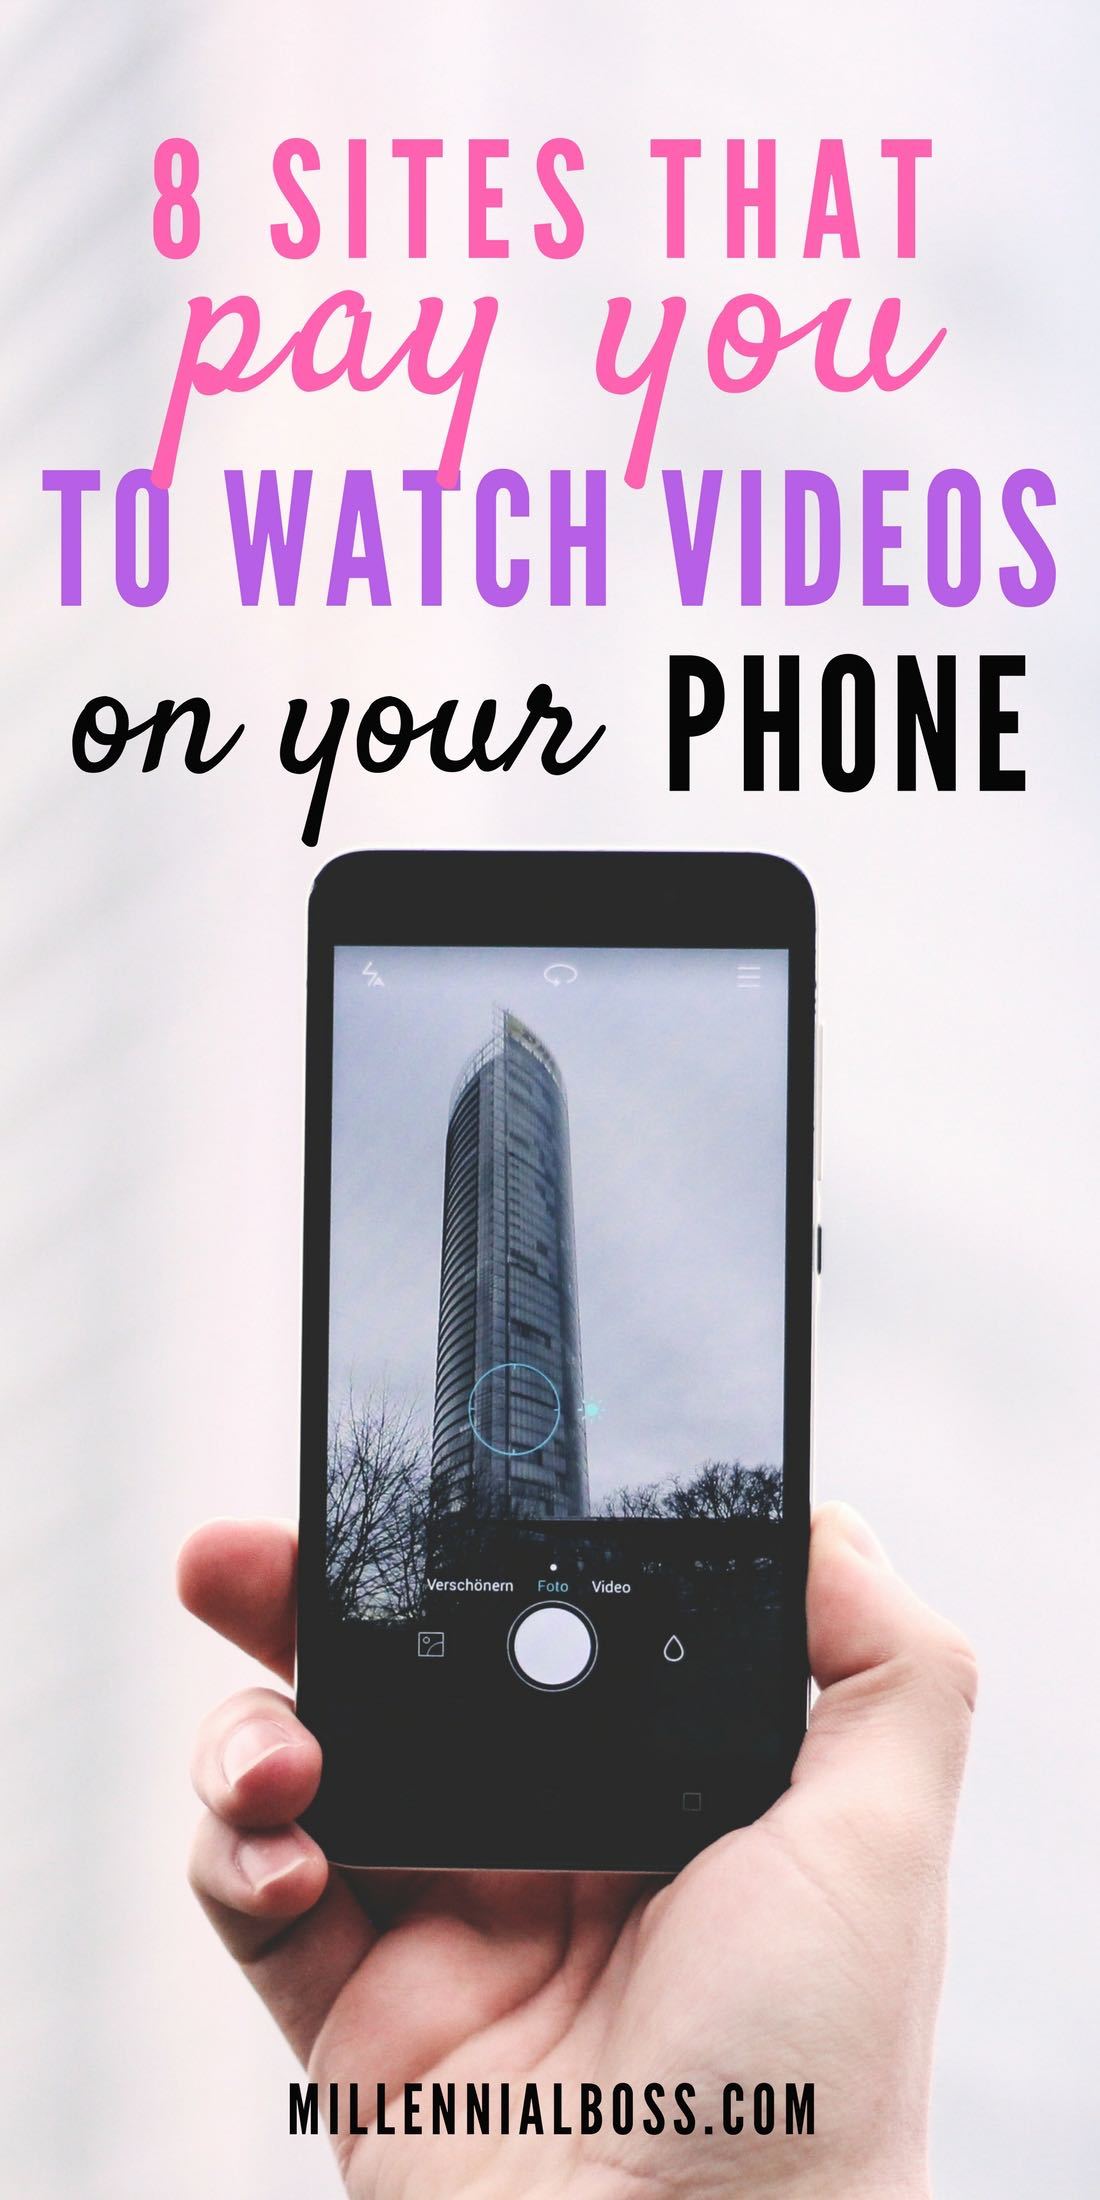 Great tips on how to make money with apps by watching videos and giving feedback to brands. Thanks for sharing!